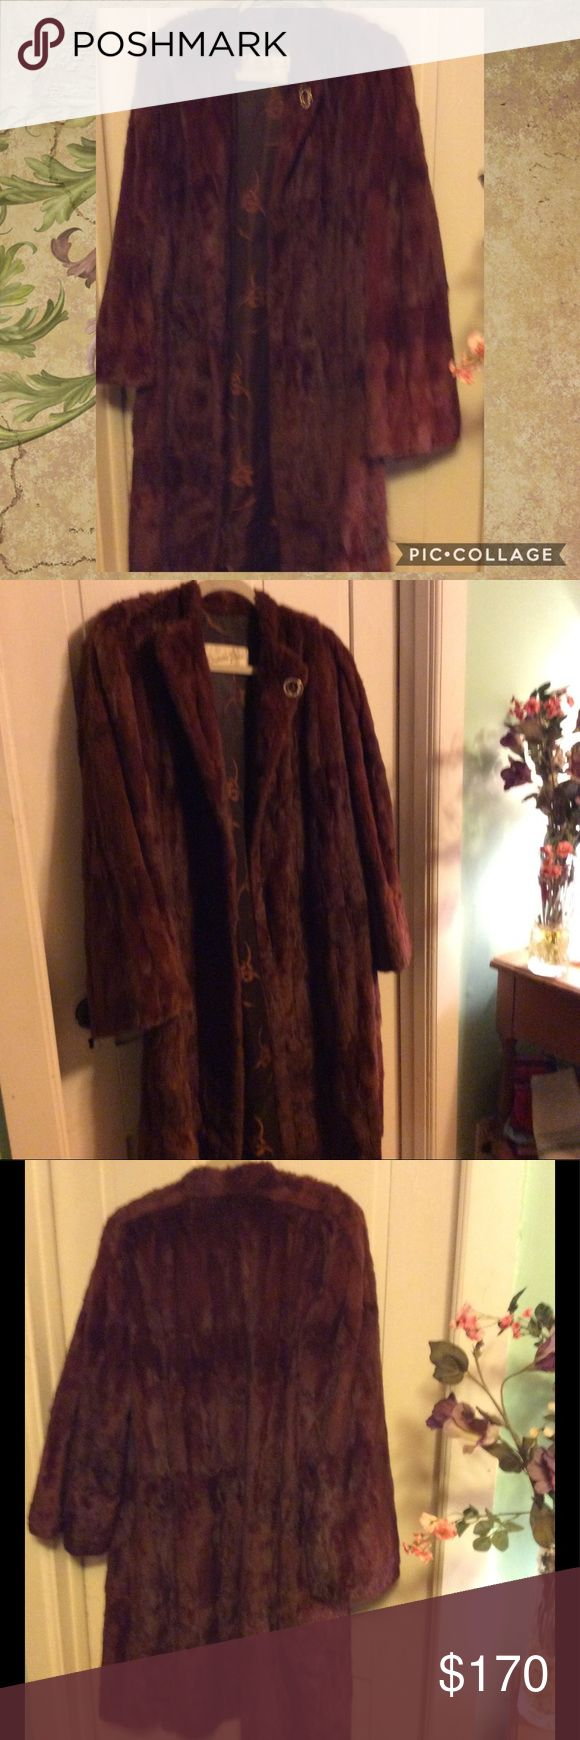 💕🎀GORGEOUS MINK COAT OUTSTANDING VINTAGE  MINK COAT IN AN EYE CATCHING RED COPPER COLOR.  THE COAT IS IN VERY GOOD CONDITION BOTH INSIDE AND OUT. FUR IS CLEAN PLUSH & SO SOFT.  LINING IS ALSO IN GREAT SHAPE!  WILL FIT SIZES L/XL. RECENT PRICE DROP. Jackets & Coats